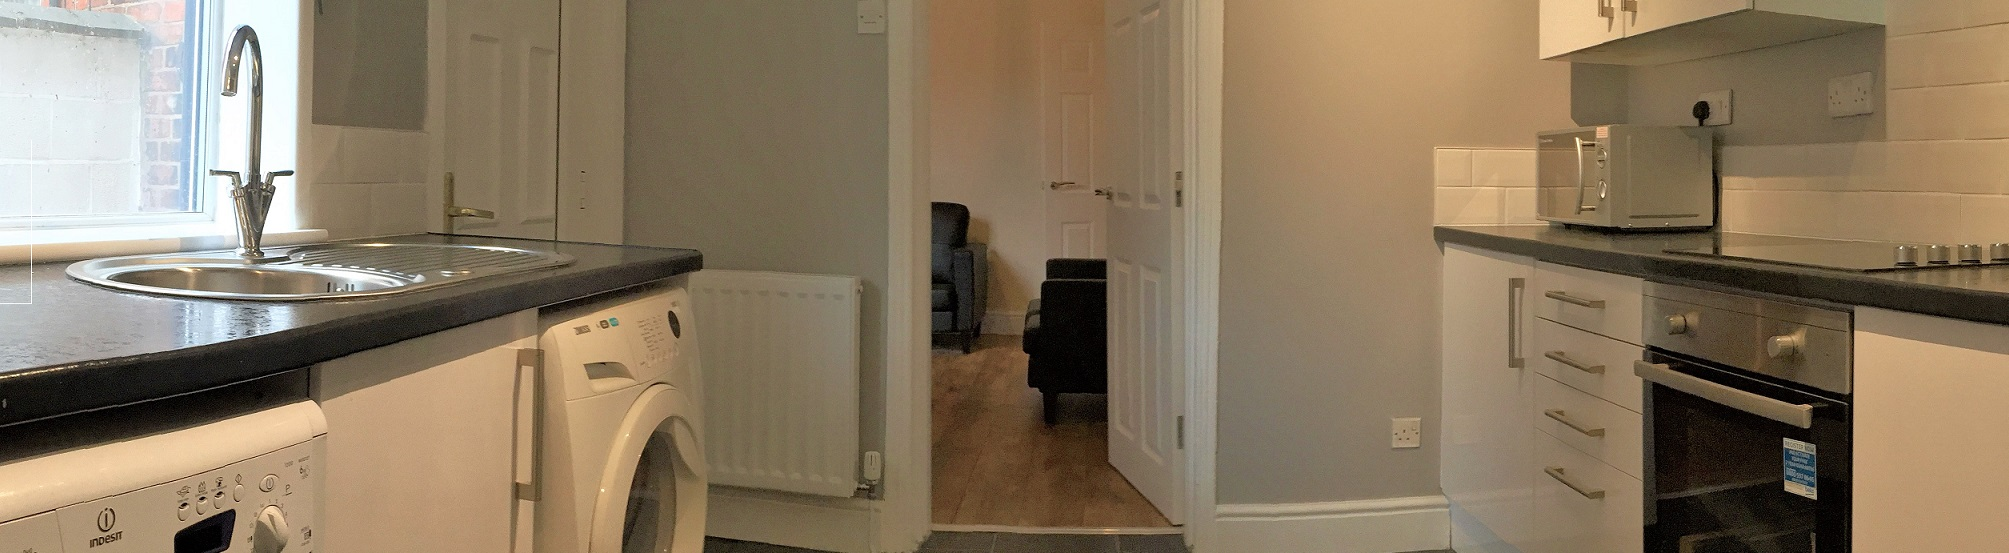 Single Room at Derrington Avenue, Crewe